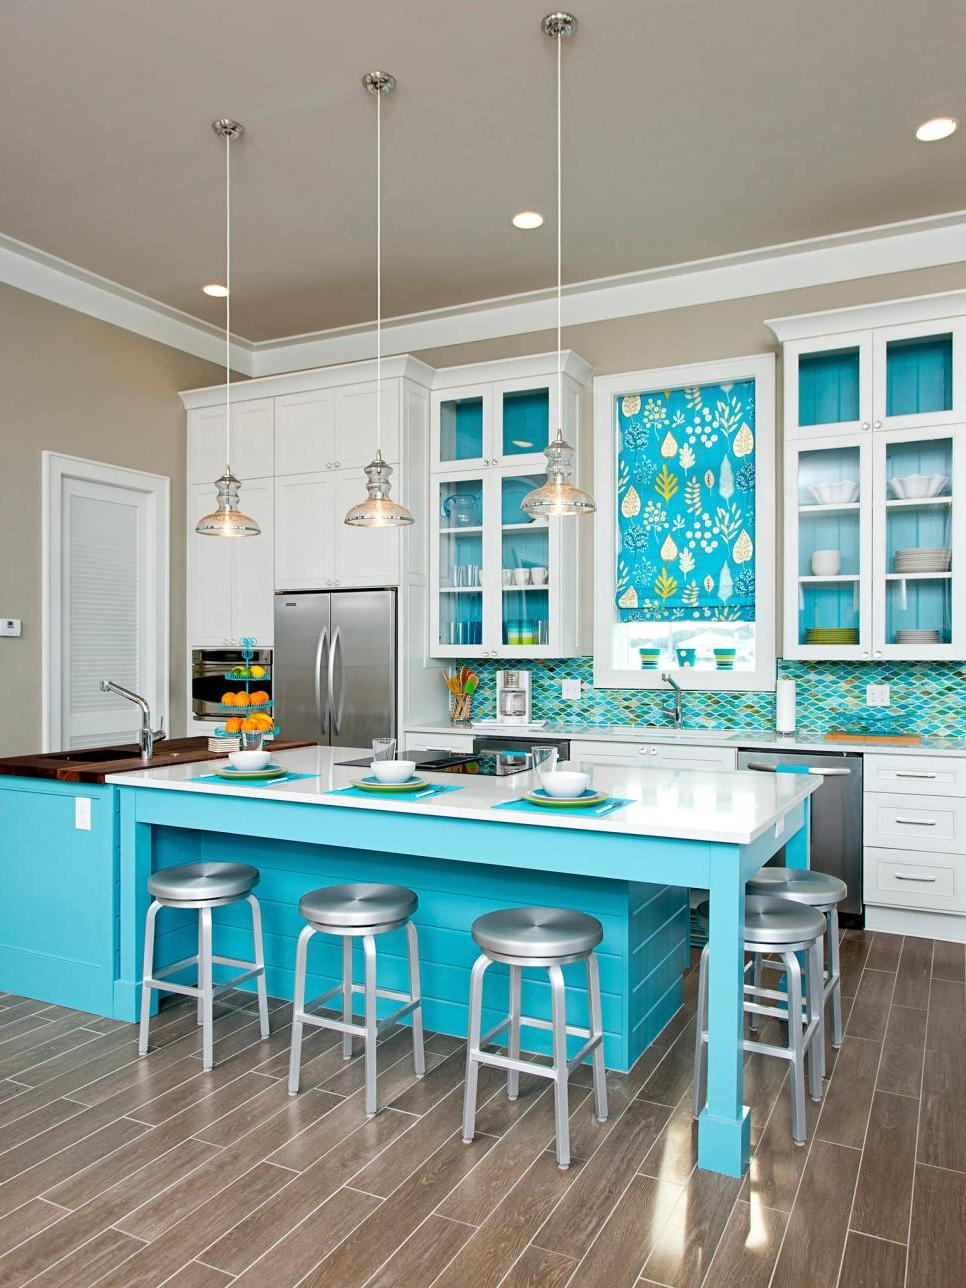 50 Best White Kitchen Cabinet Ideas and Designs 2018 - Page 2 of 5 ...